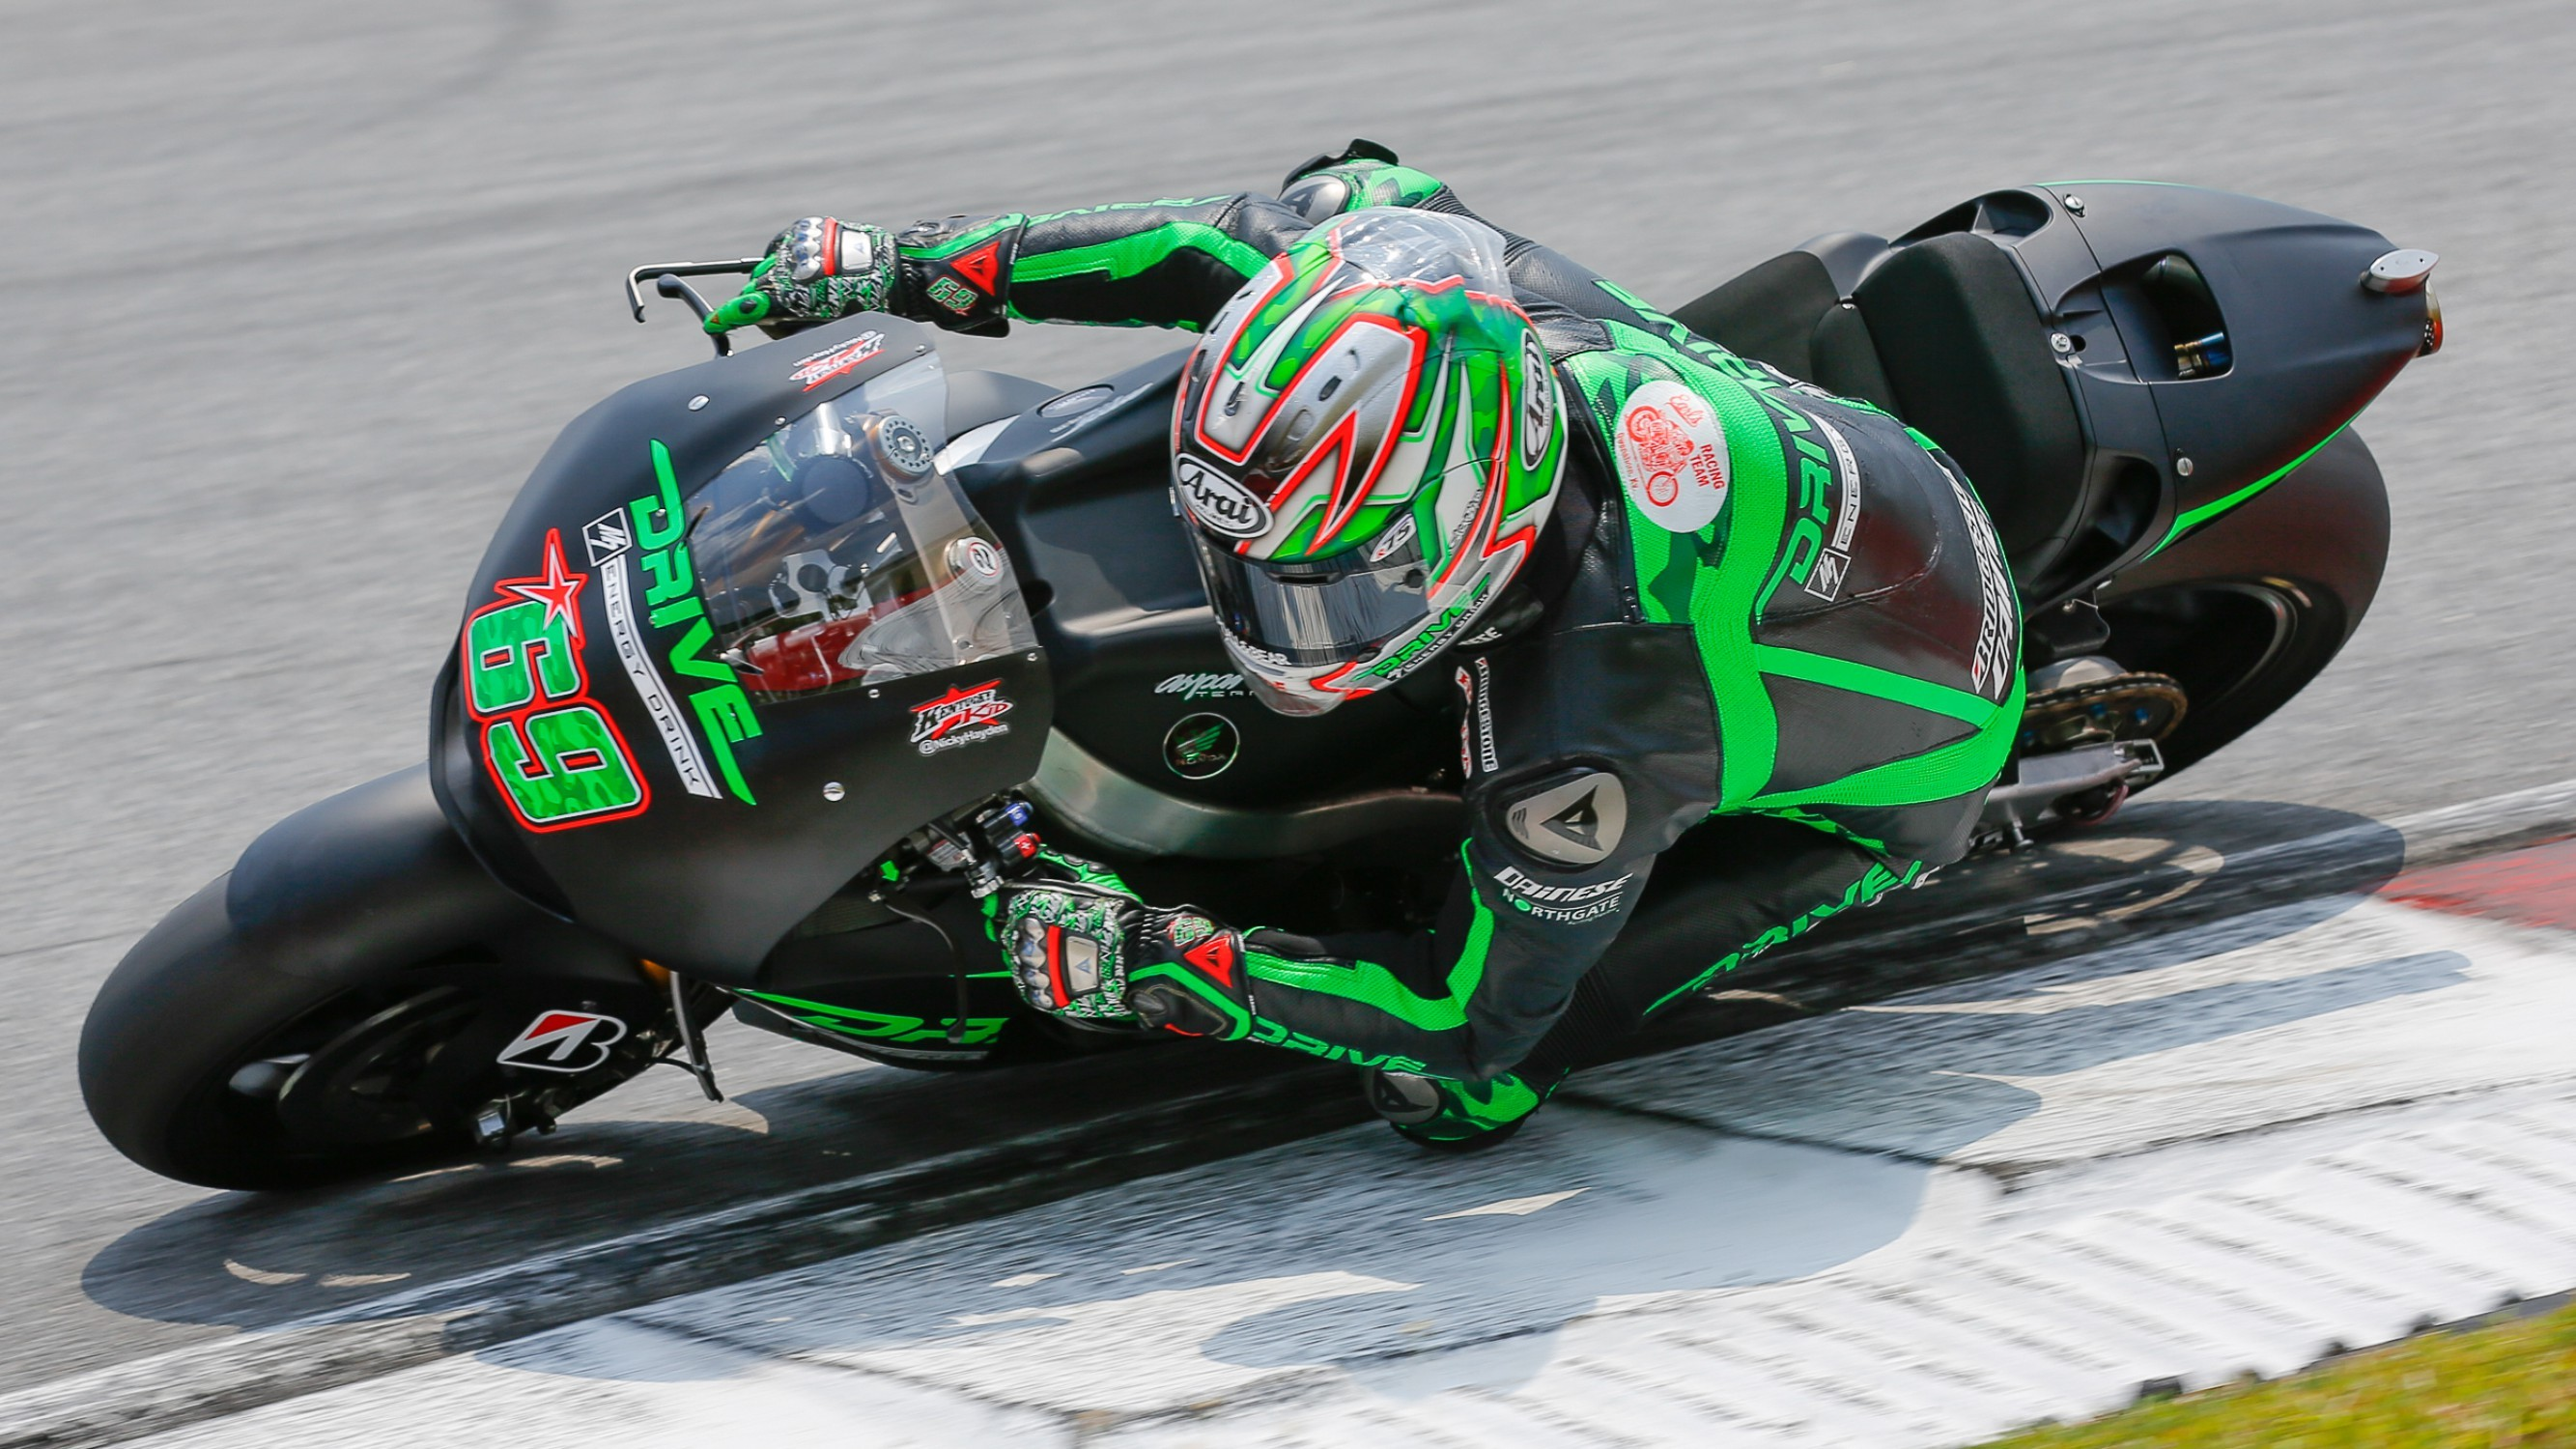 Hayden Once More Rumored to Go to World Superbike - autoevolution